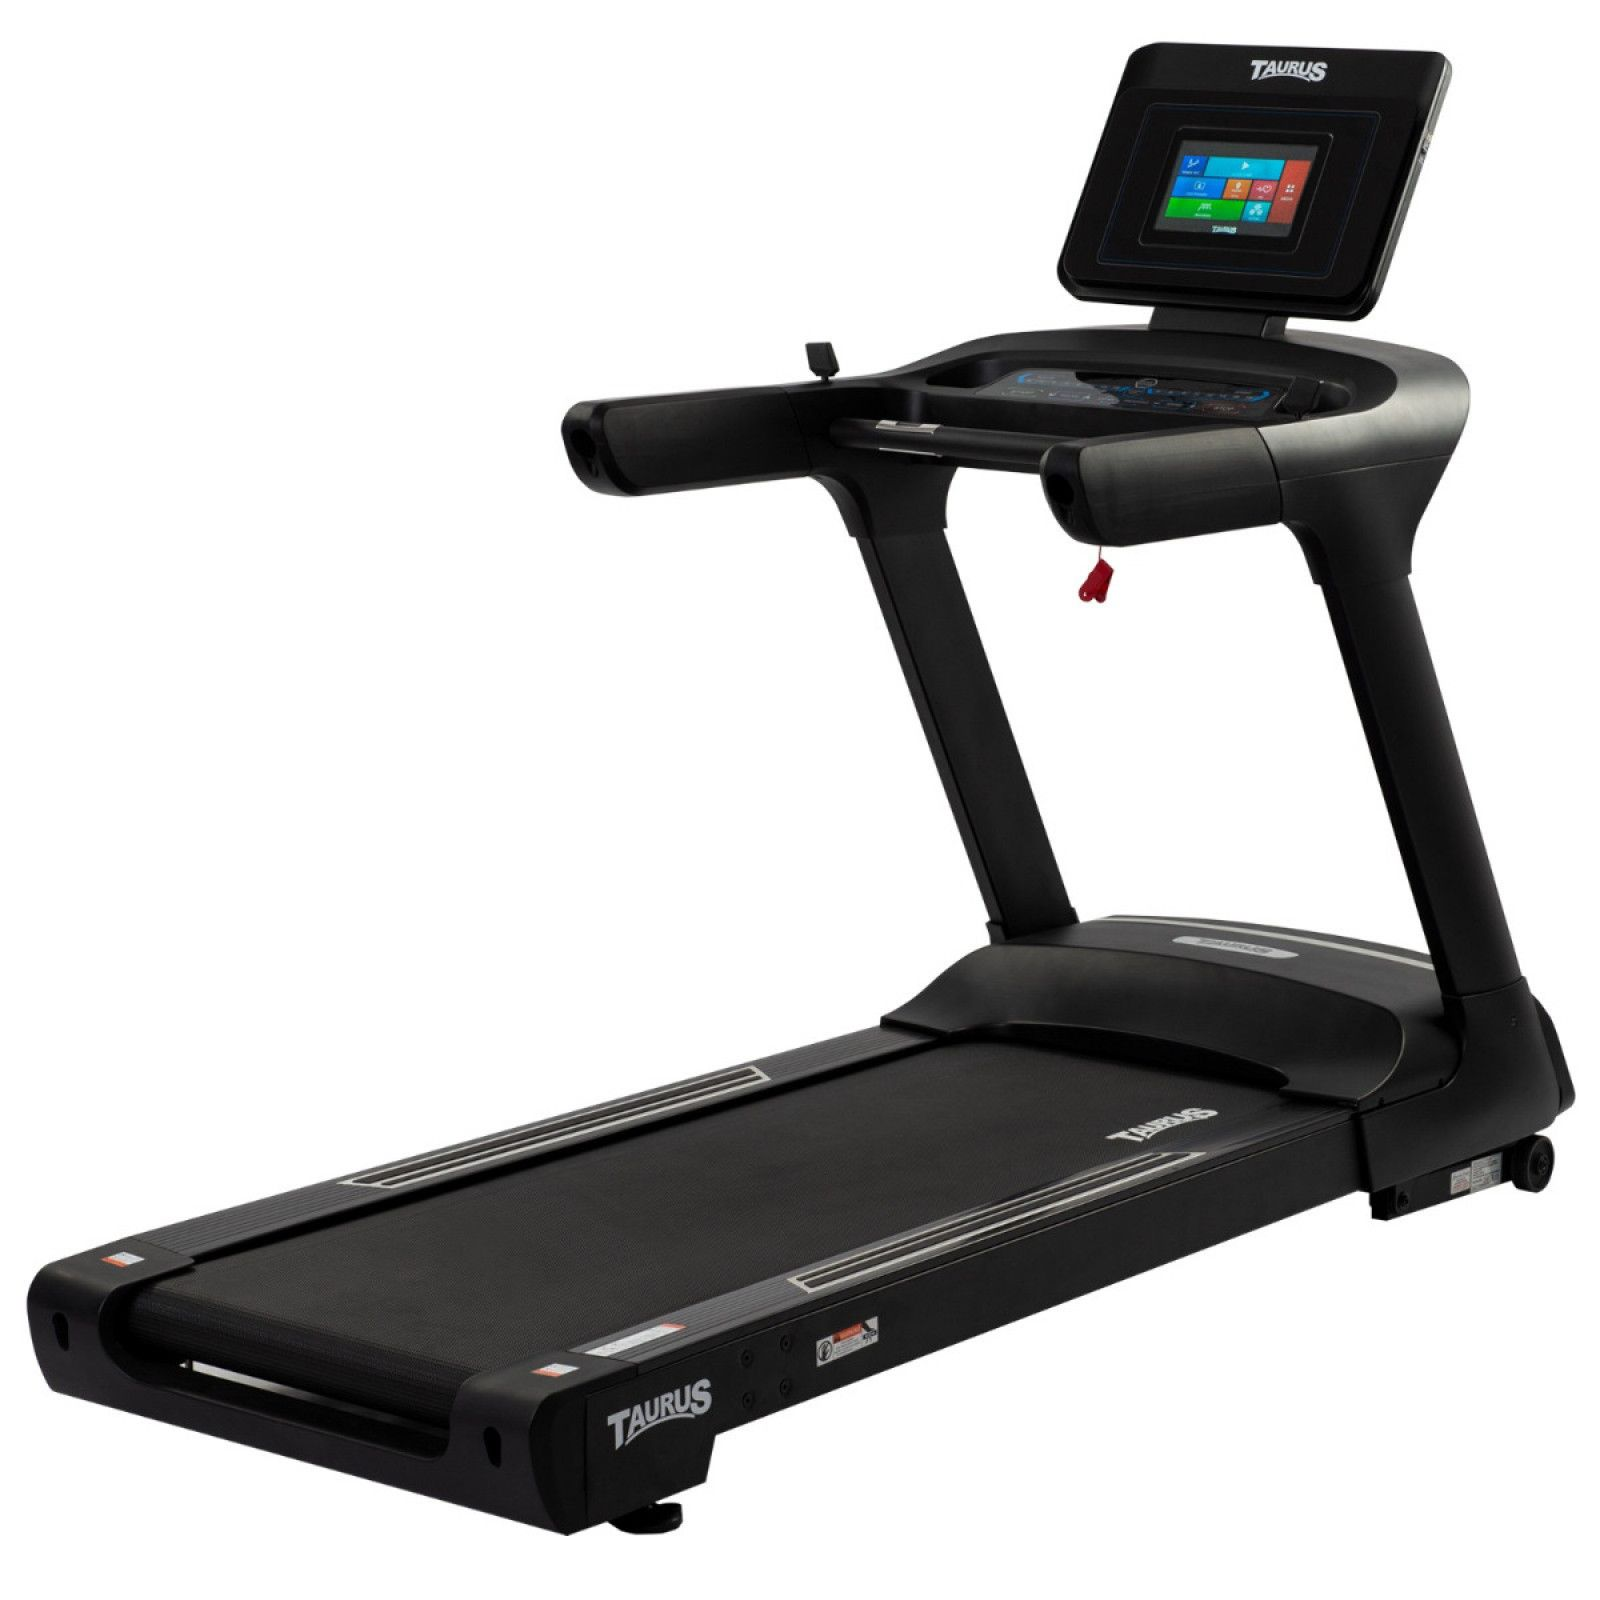 Taurus T9.9 Black Edition Treadmill with entertainment console